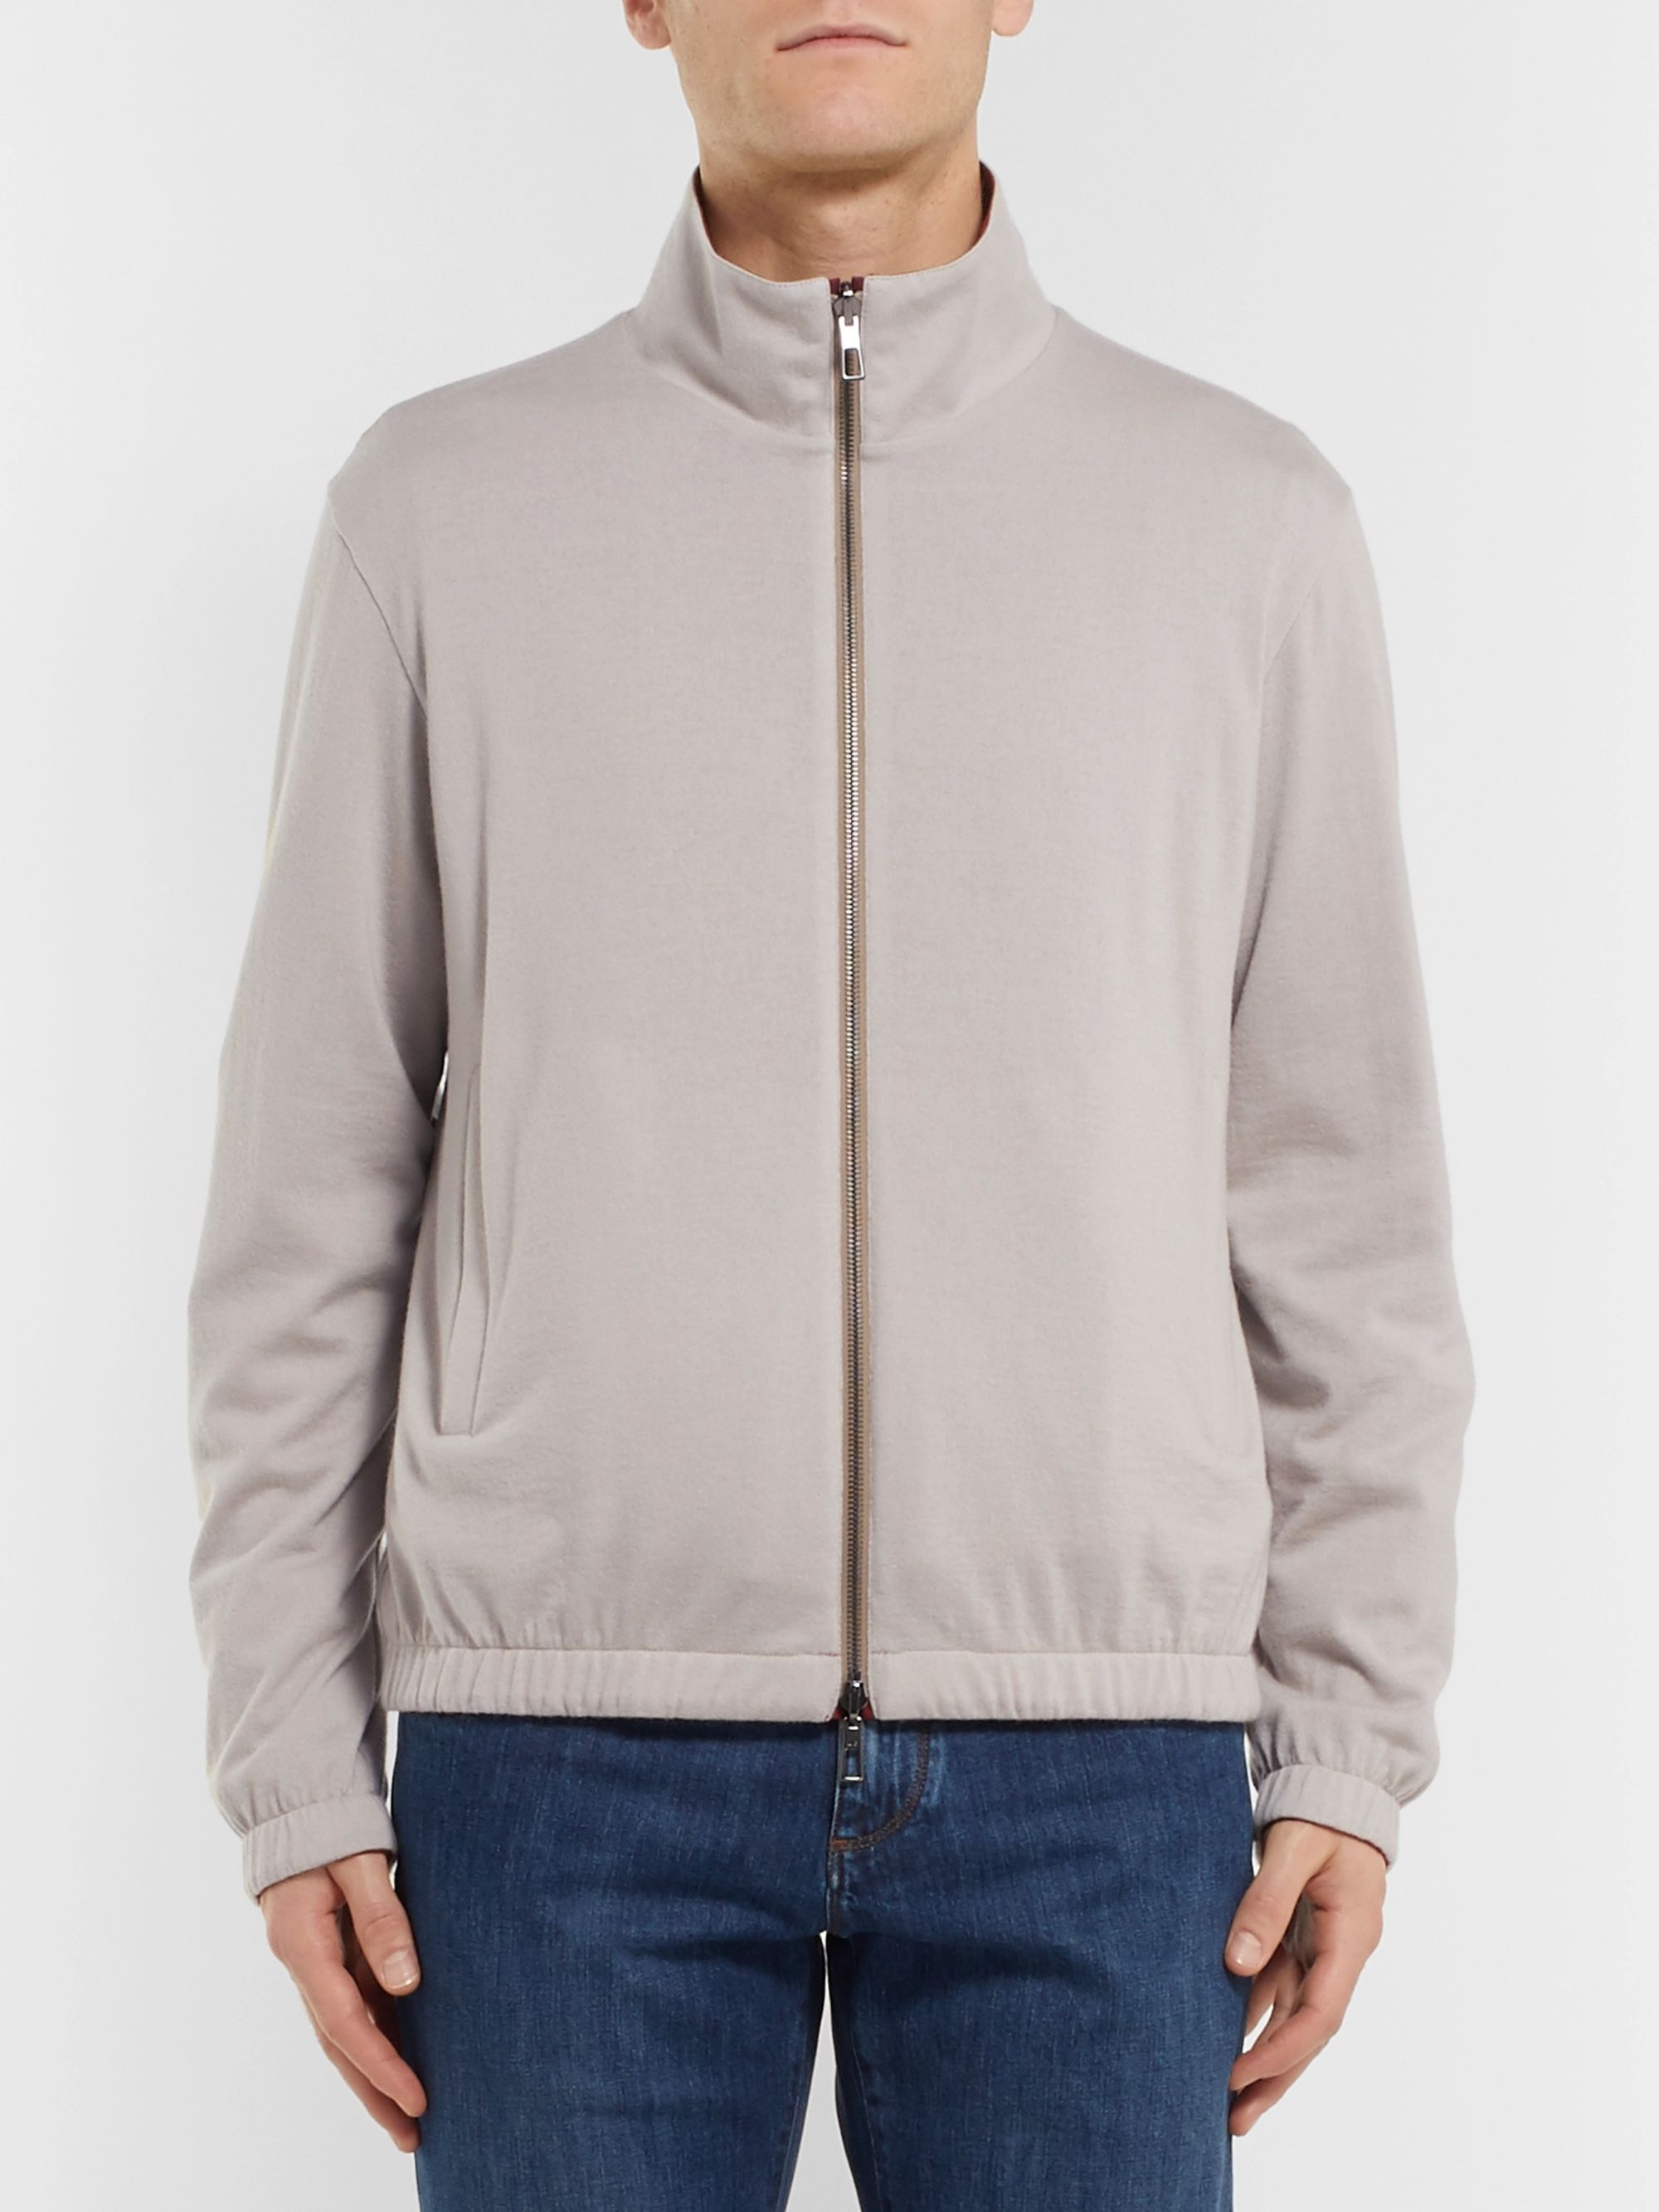 Loro Piana Windmate Reversible Storm System Shell and Cashmere Bomber Jacket